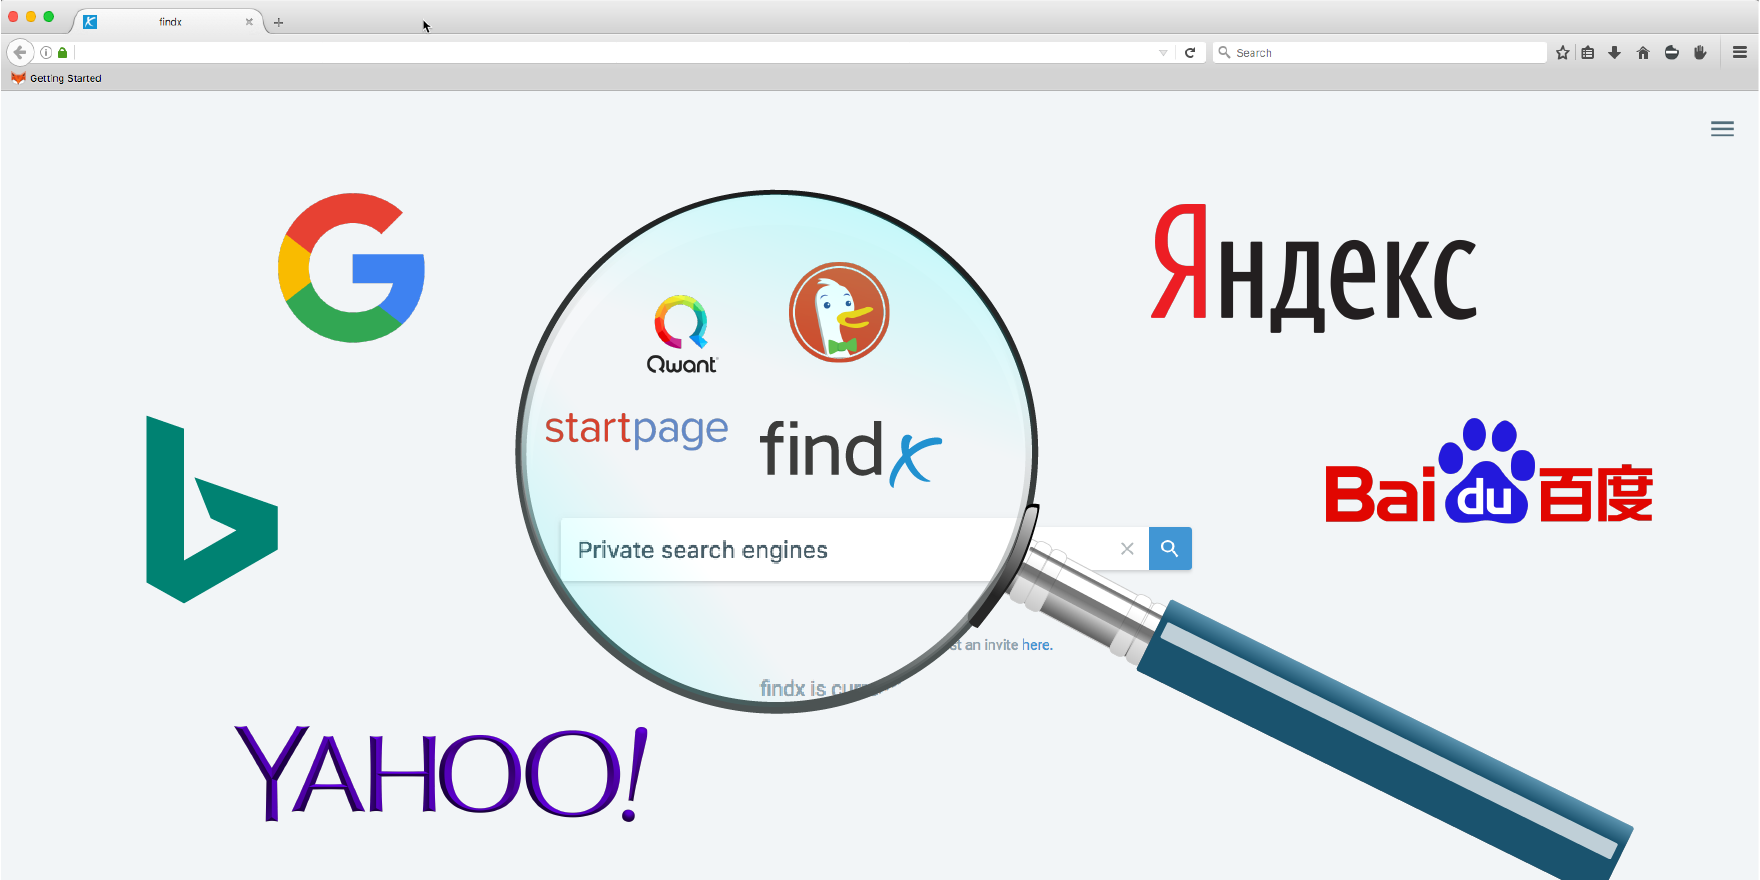 How Many Private Search Engines Can You Name? Here Are A